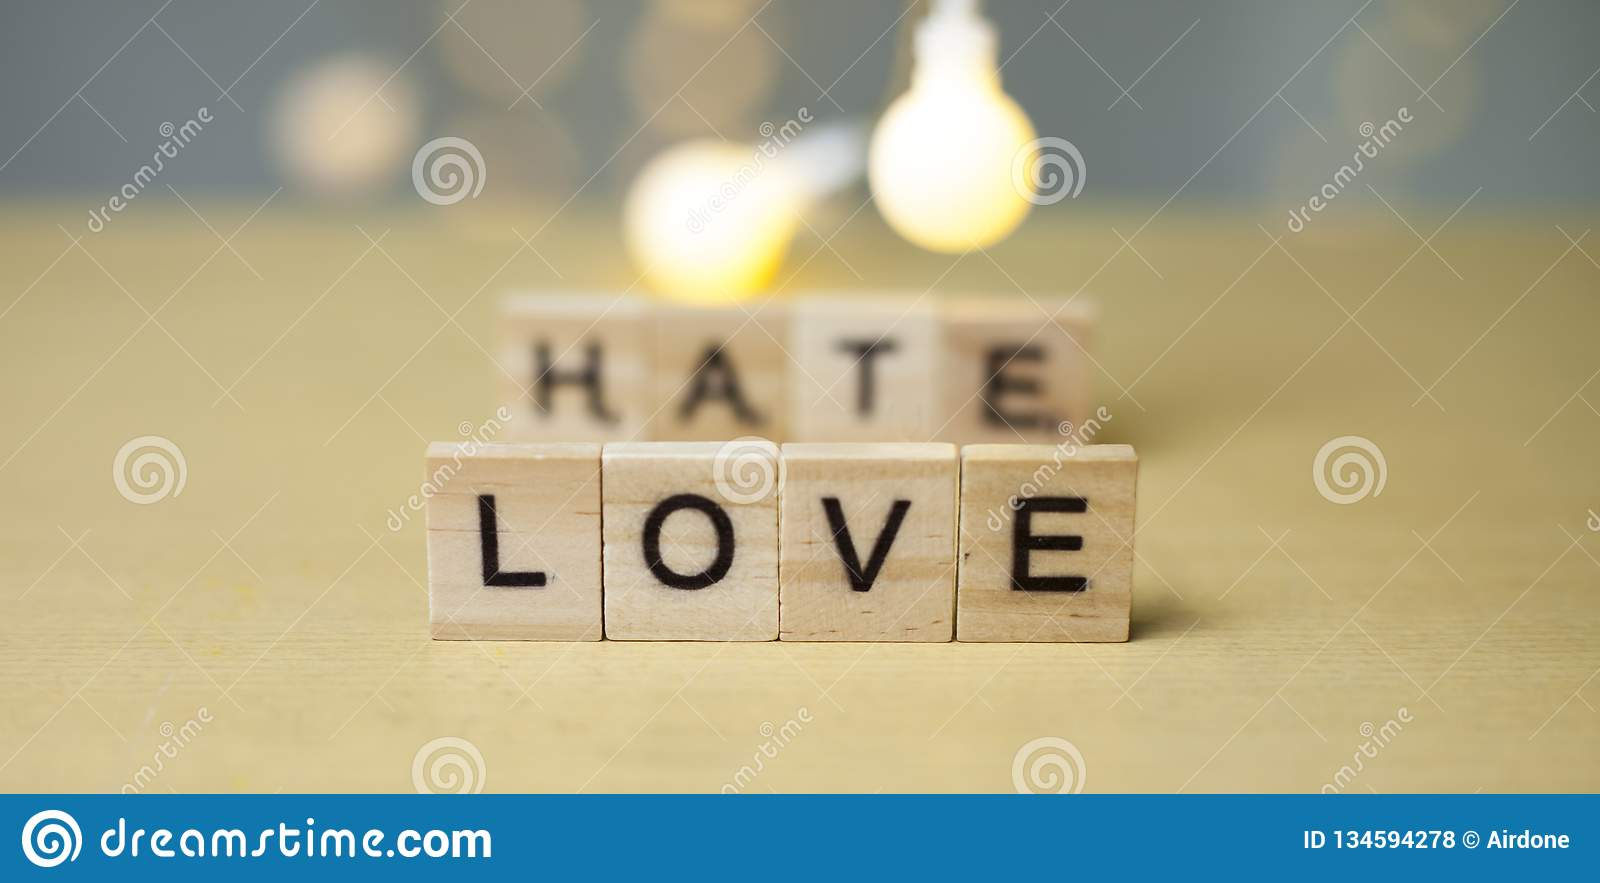 Love Hate Relationship Concept Stock Photo Image Of Lettering